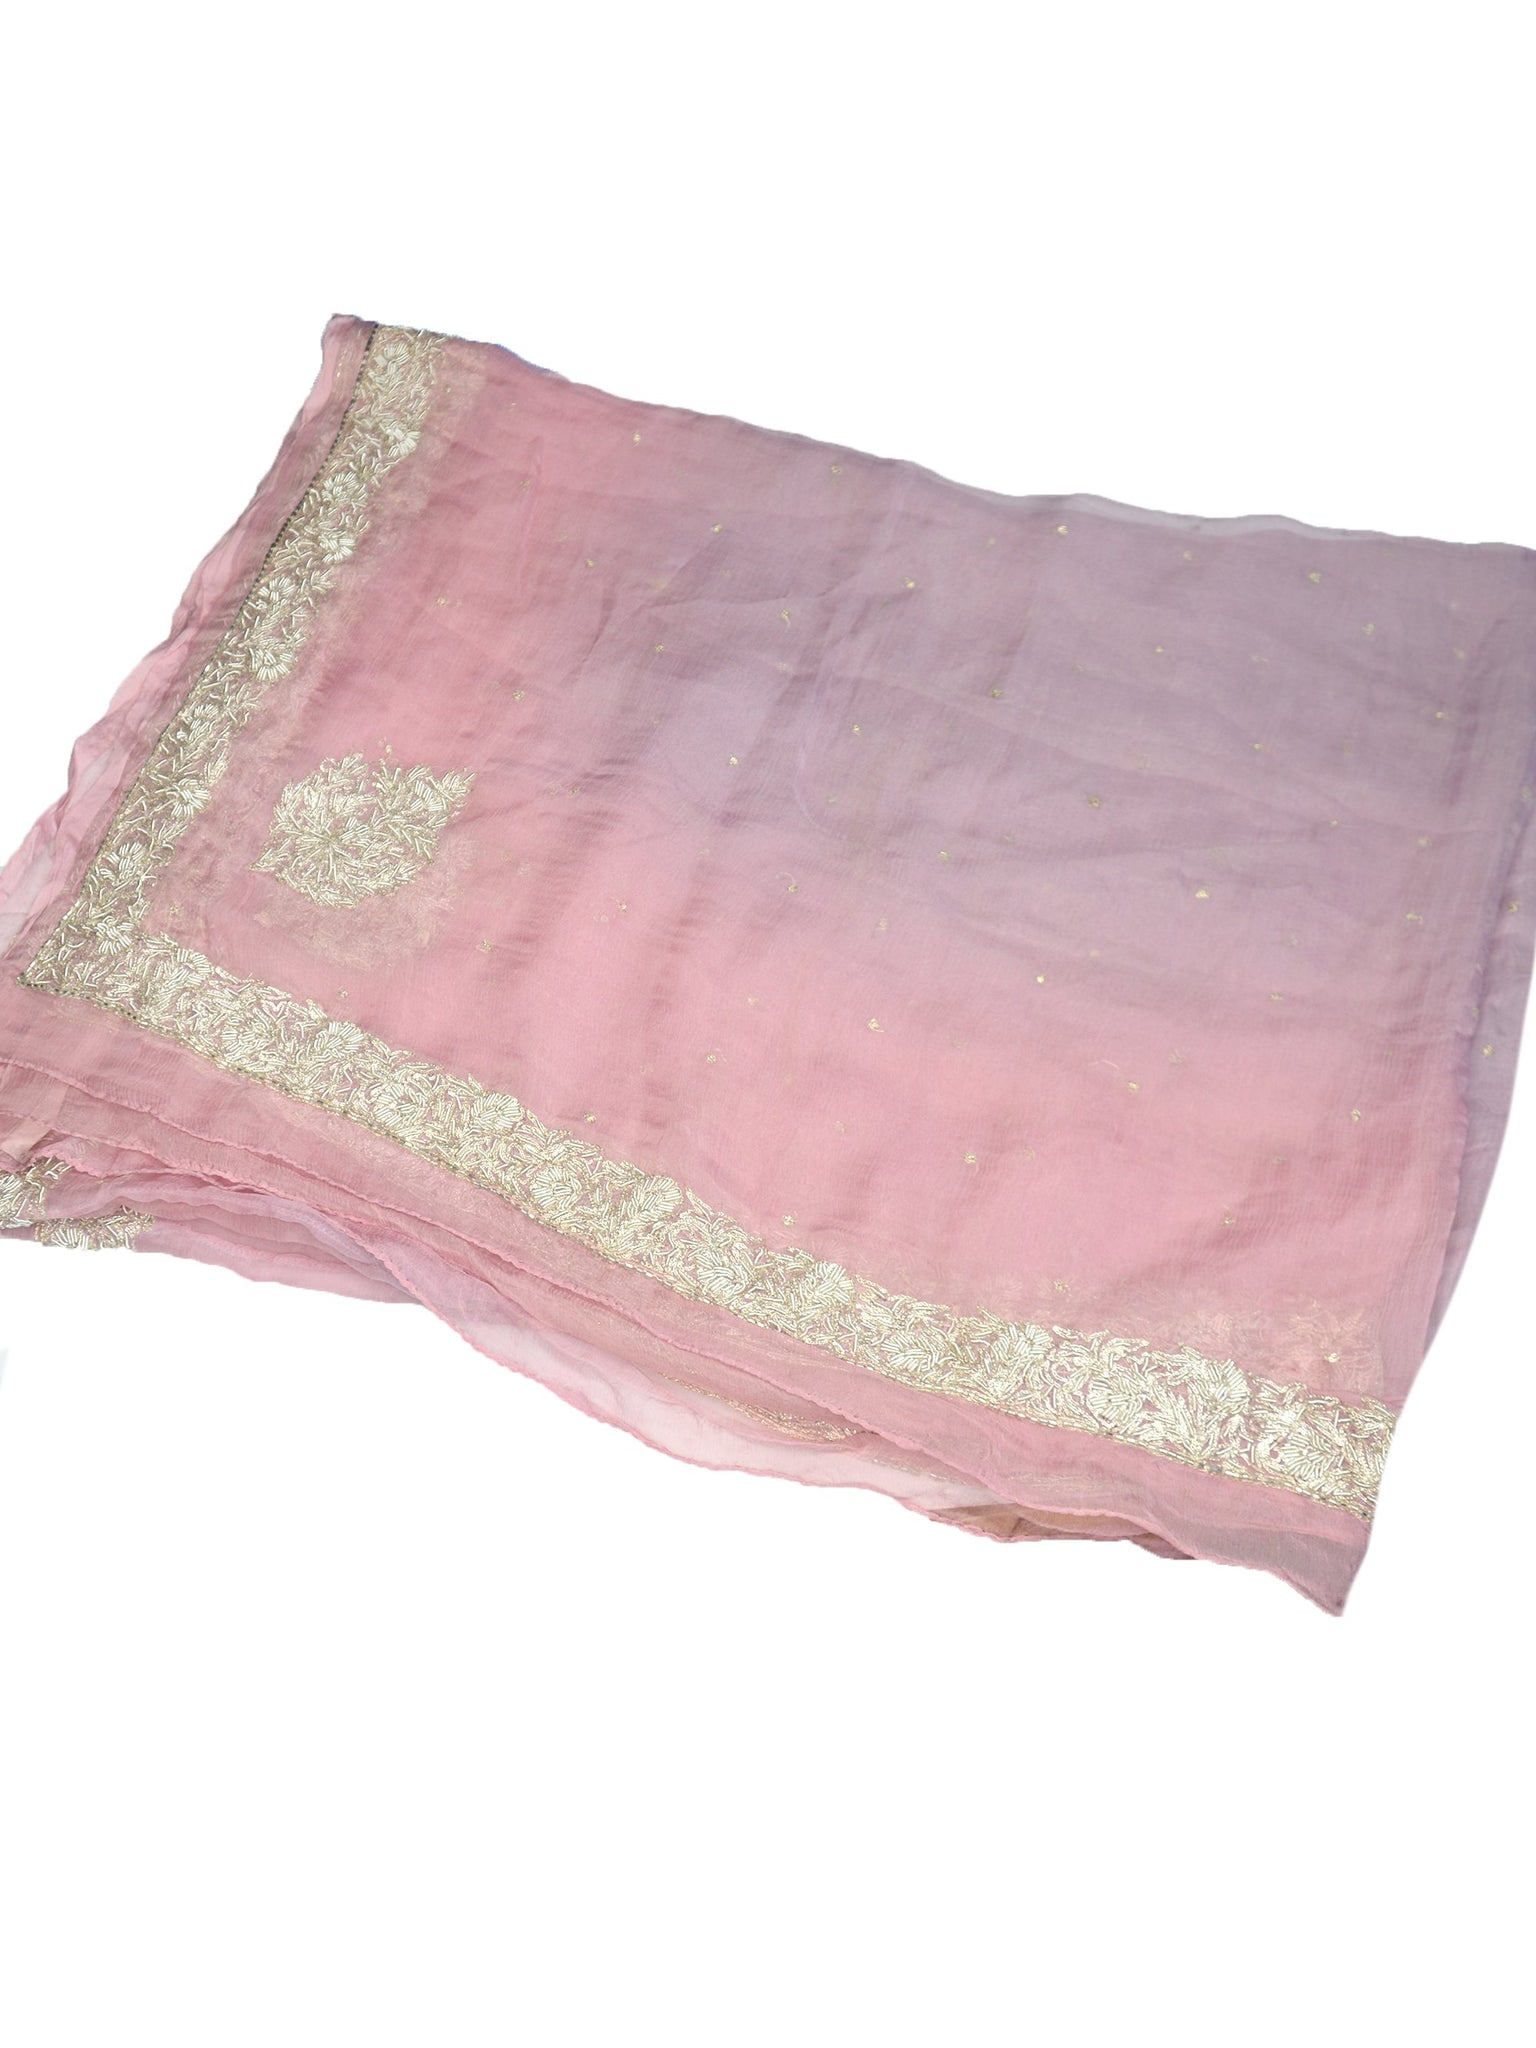 indian silk chiffon wedding shawl in pink and purple with gold embroidery